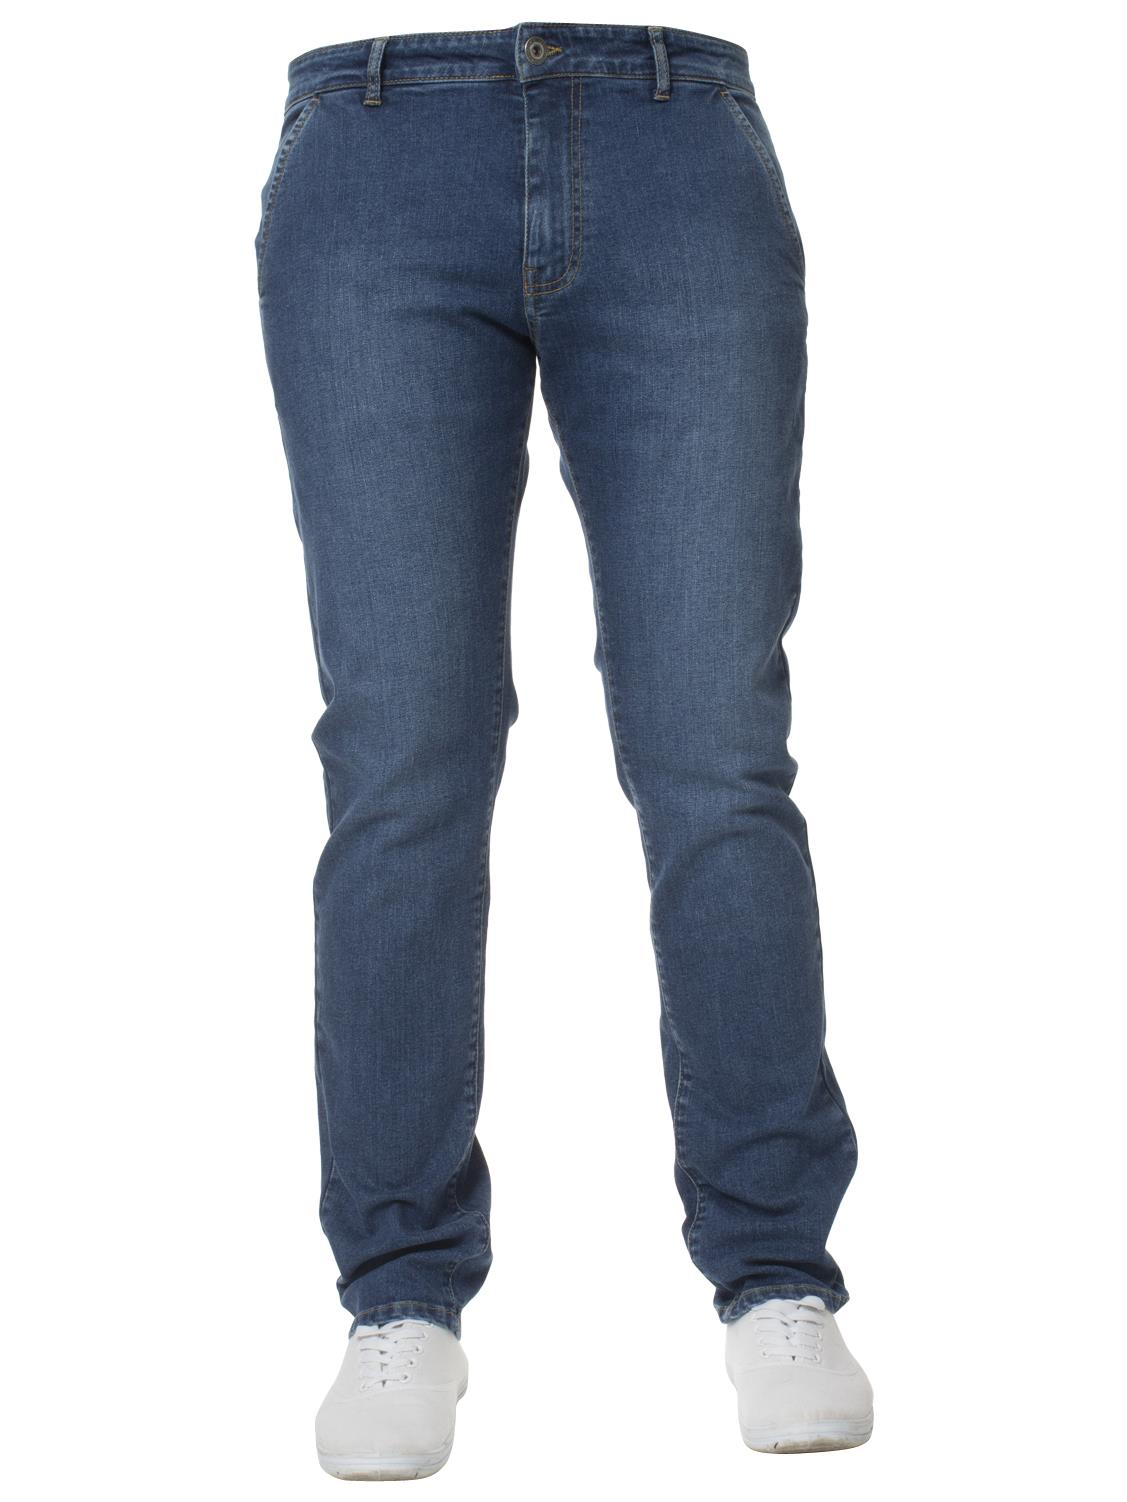 Enzo-Mens-Jeans-Big-Tall-Leg-King-Size-Denim-Pants-Chino-Trousers-Waist-44-034-60-034 miniature 30